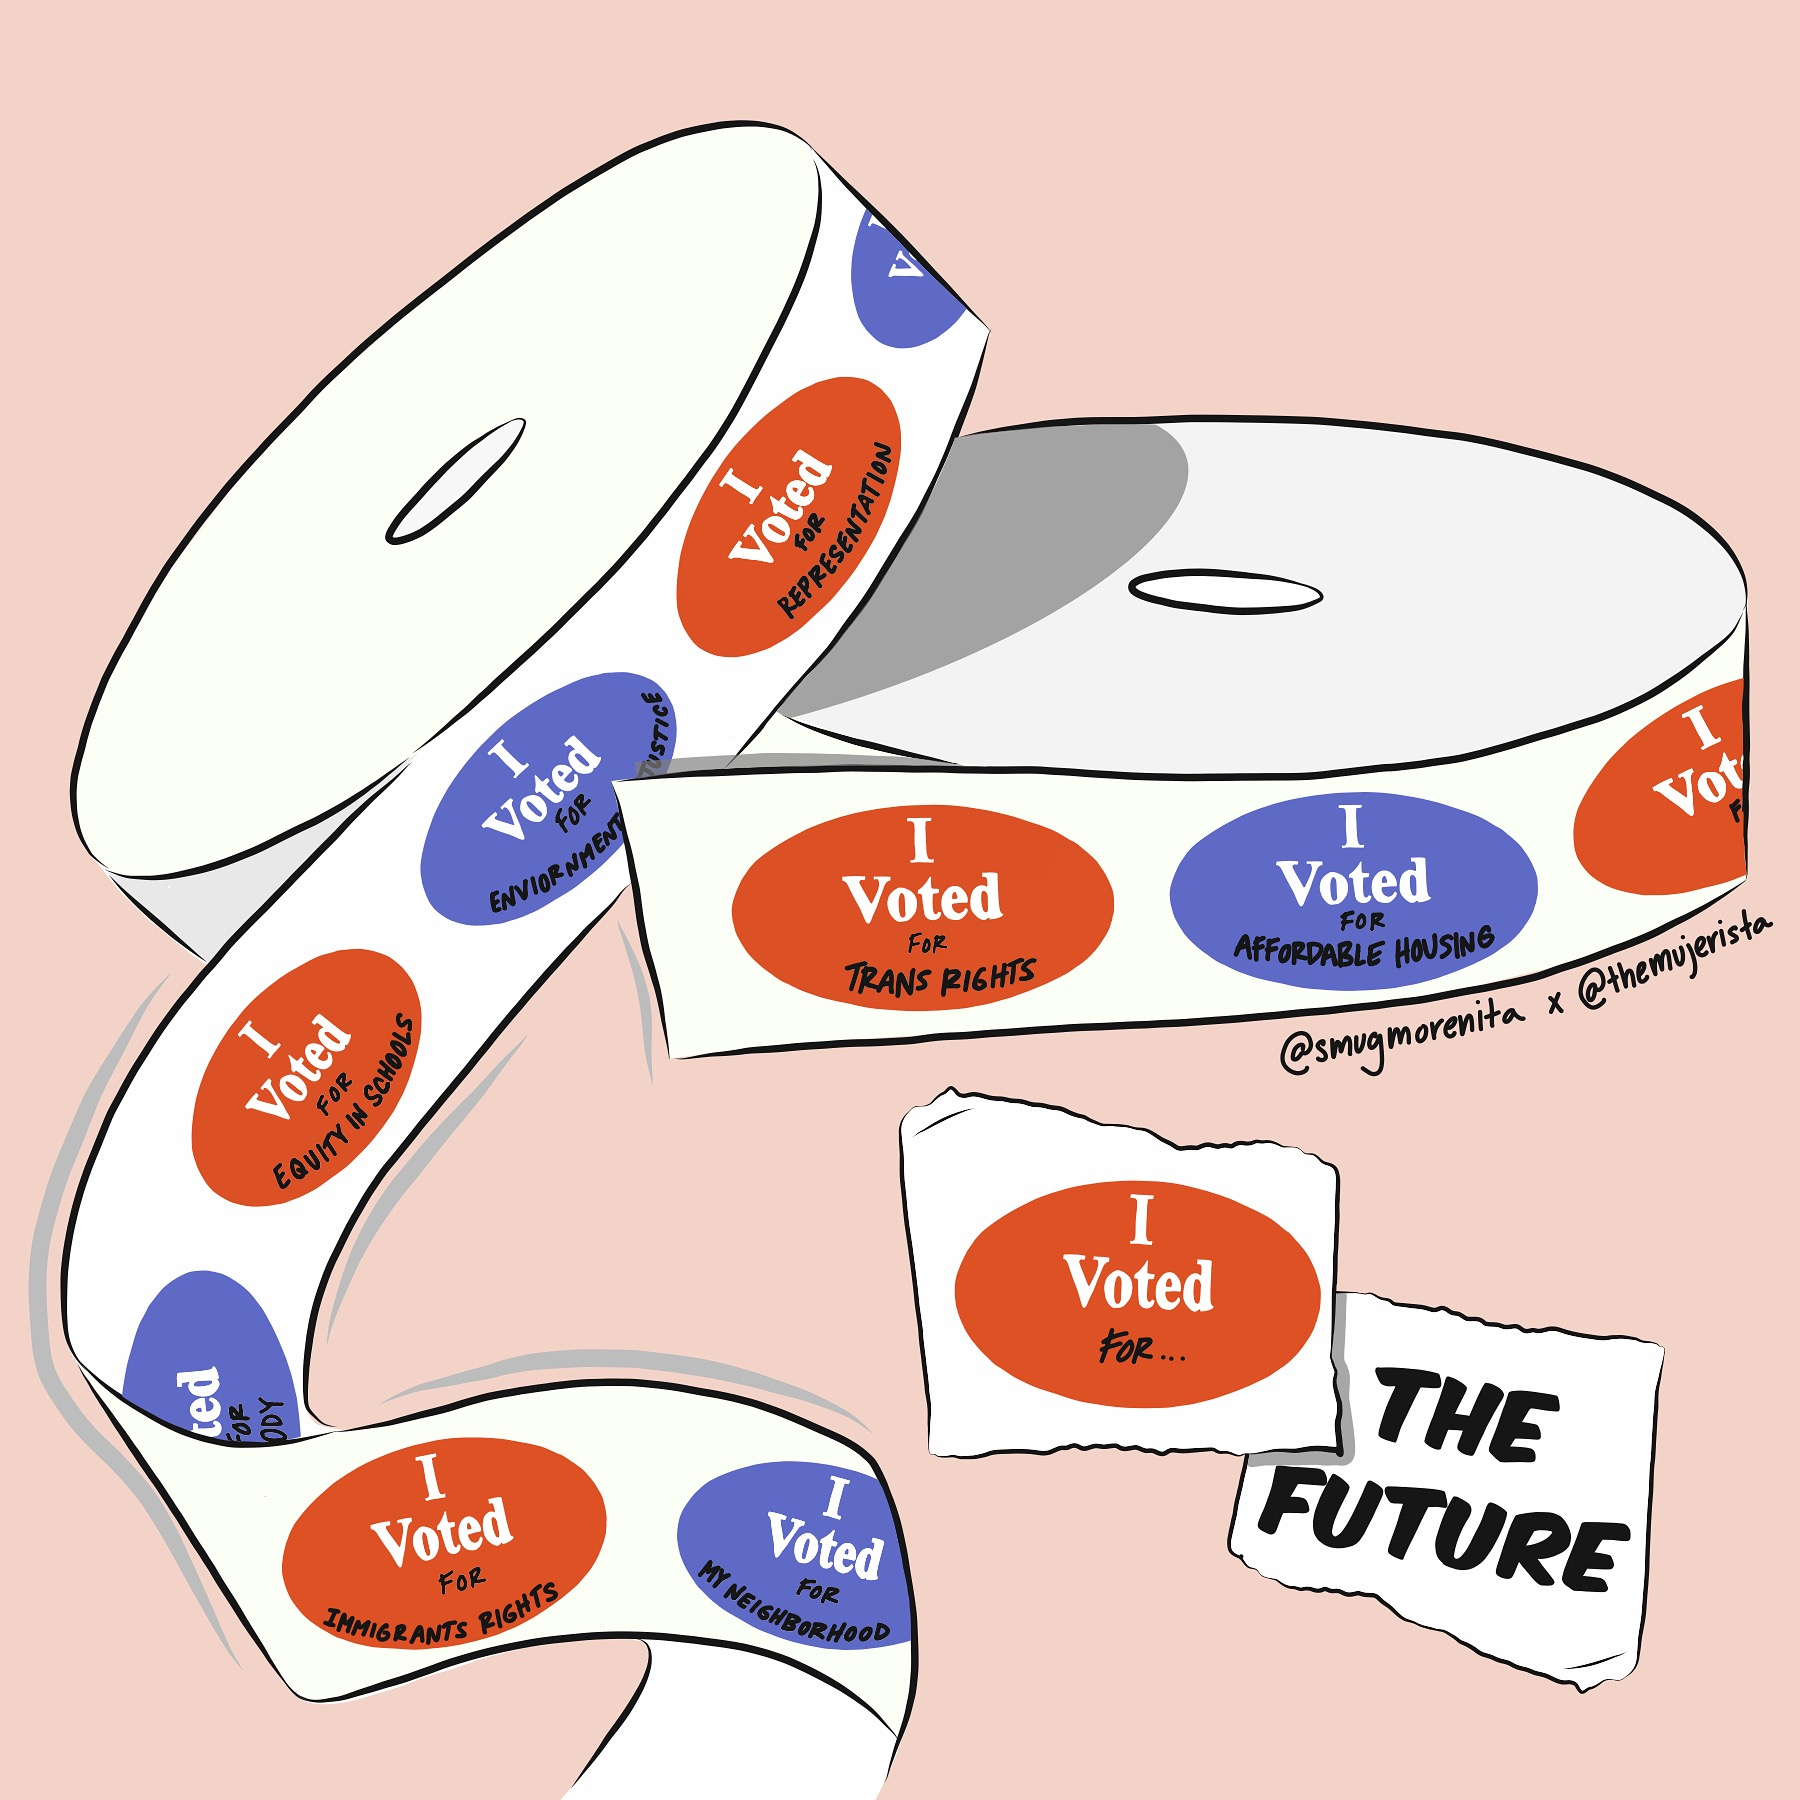 I VOTED FOR THE FUTURE